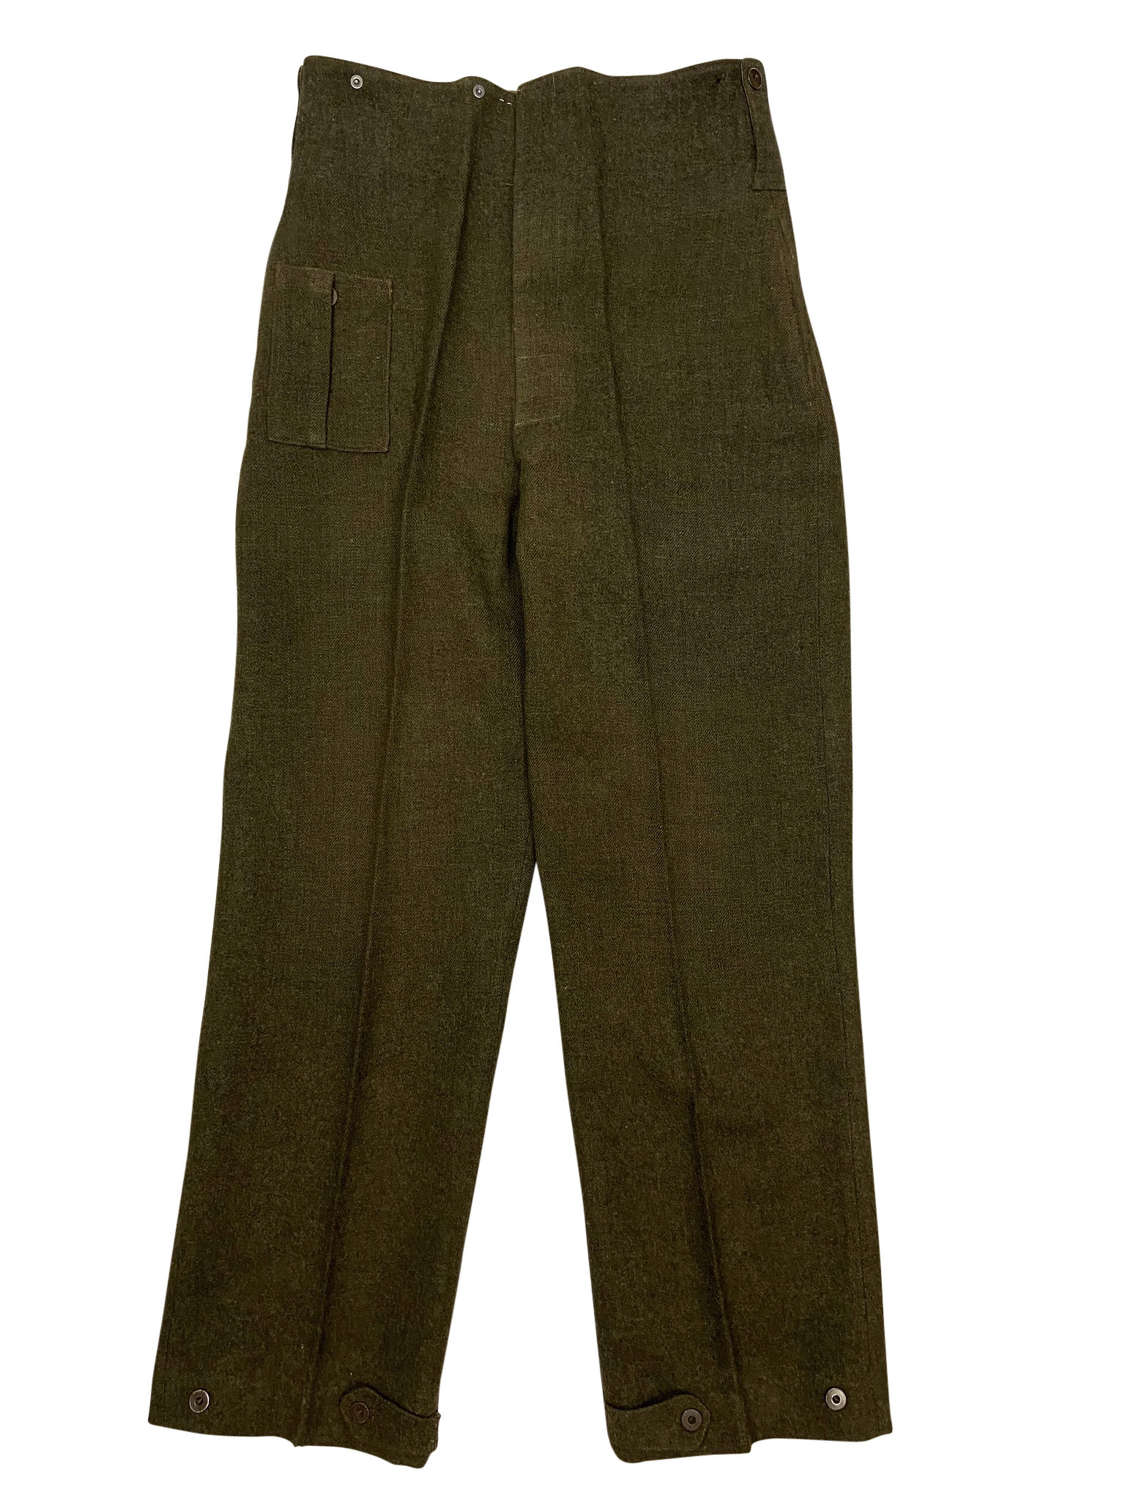 1944 Dated Canadian Battledress Trousers Size 11